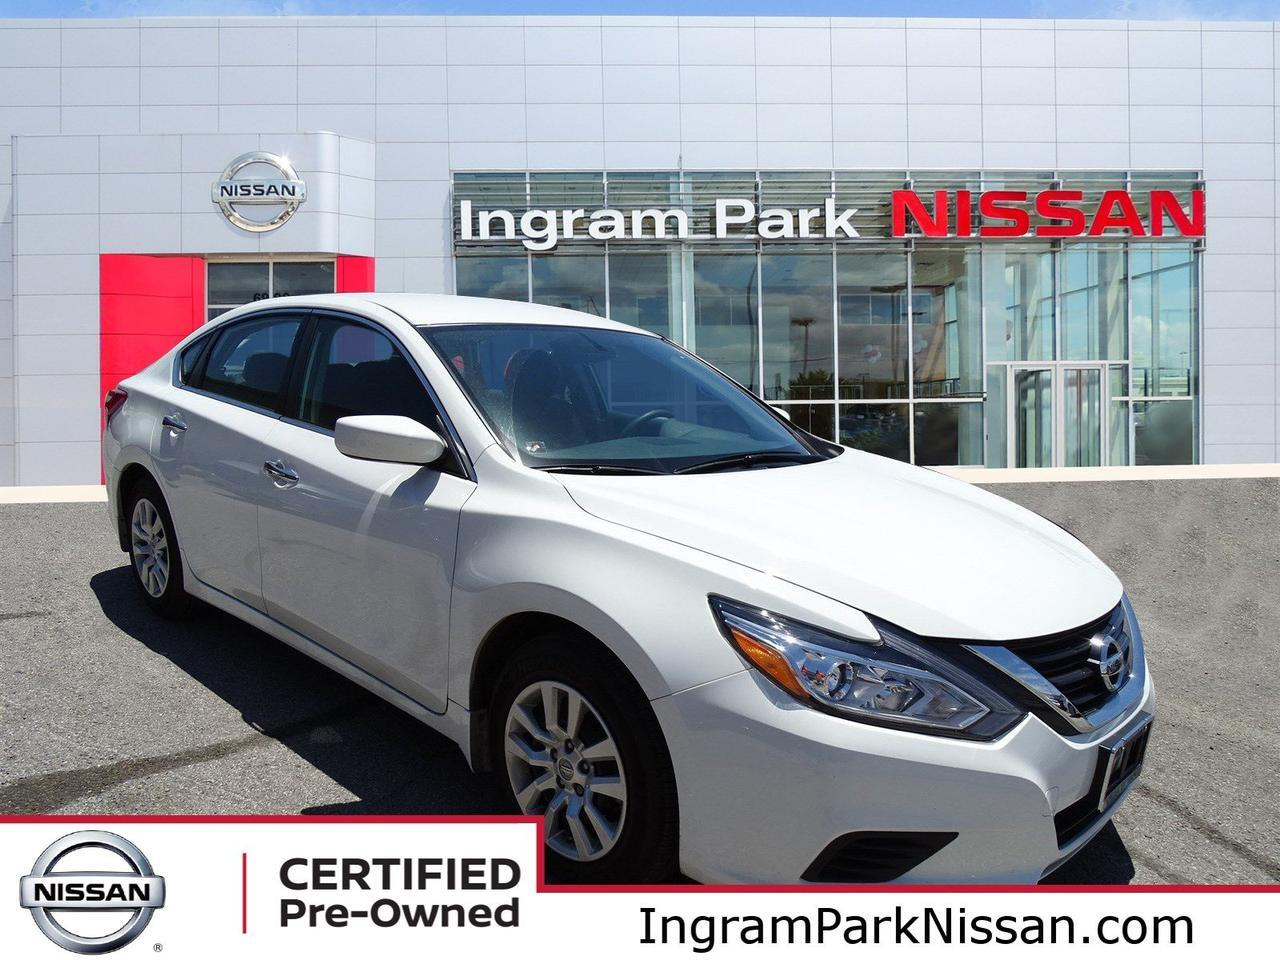 2016 nissan altima 2 5 s nissan dealer in greensboro nc used sexy girl and car photos. Black Bedroom Furniture Sets. Home Design Ideas